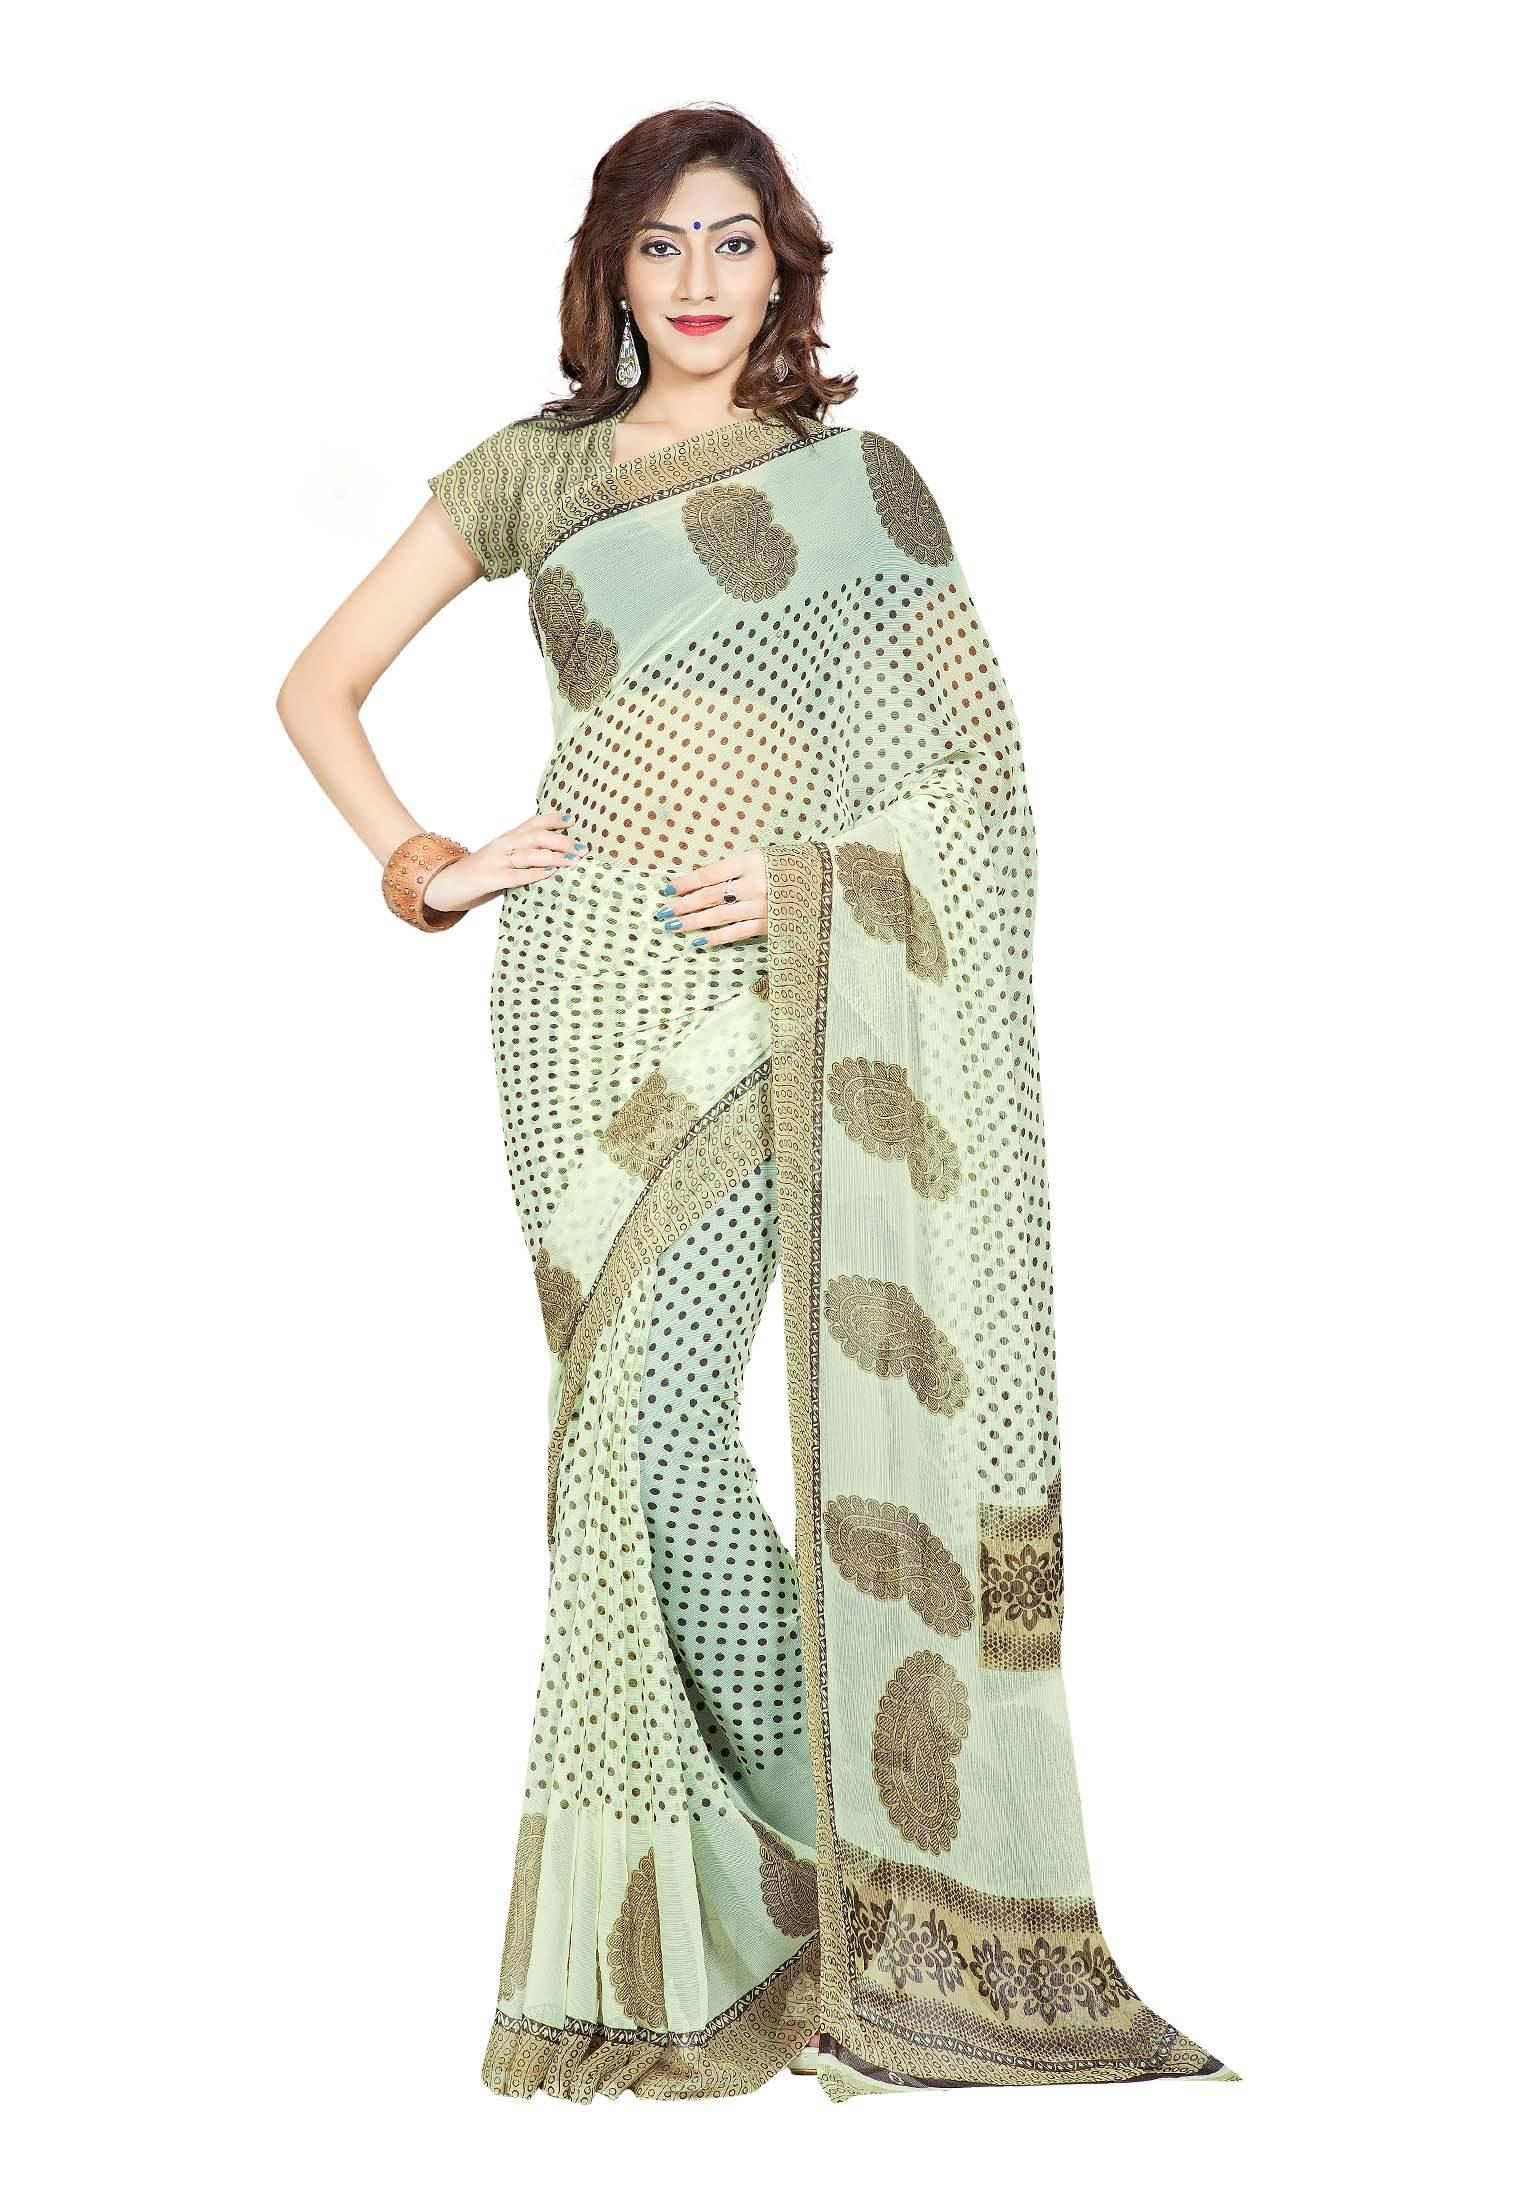 Ambaji Casual Wear Olive Green Colored Printed Chiffon Saree/Sari